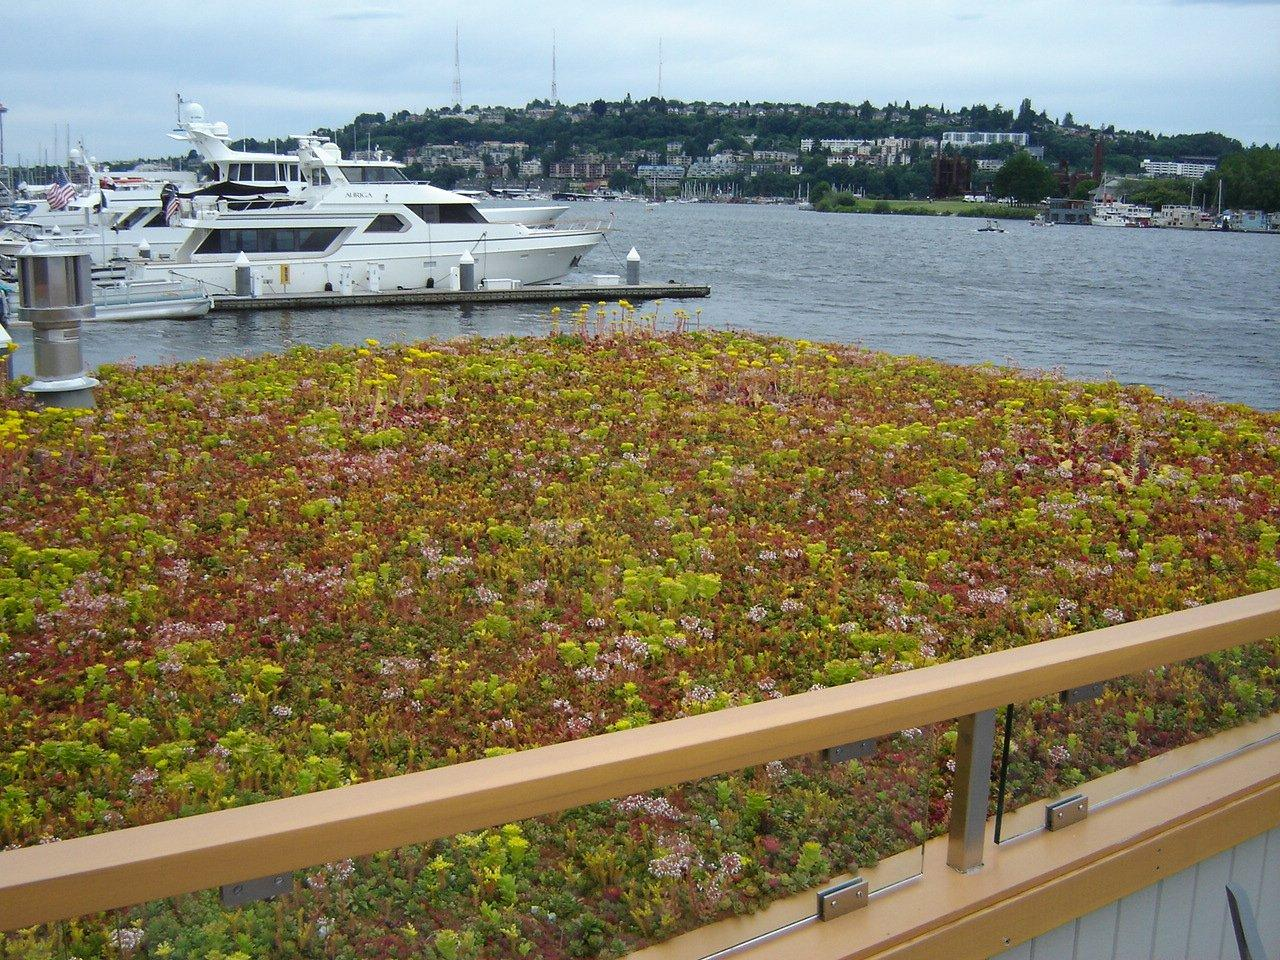 2012.6.28 Lake Union Floating Home (2)